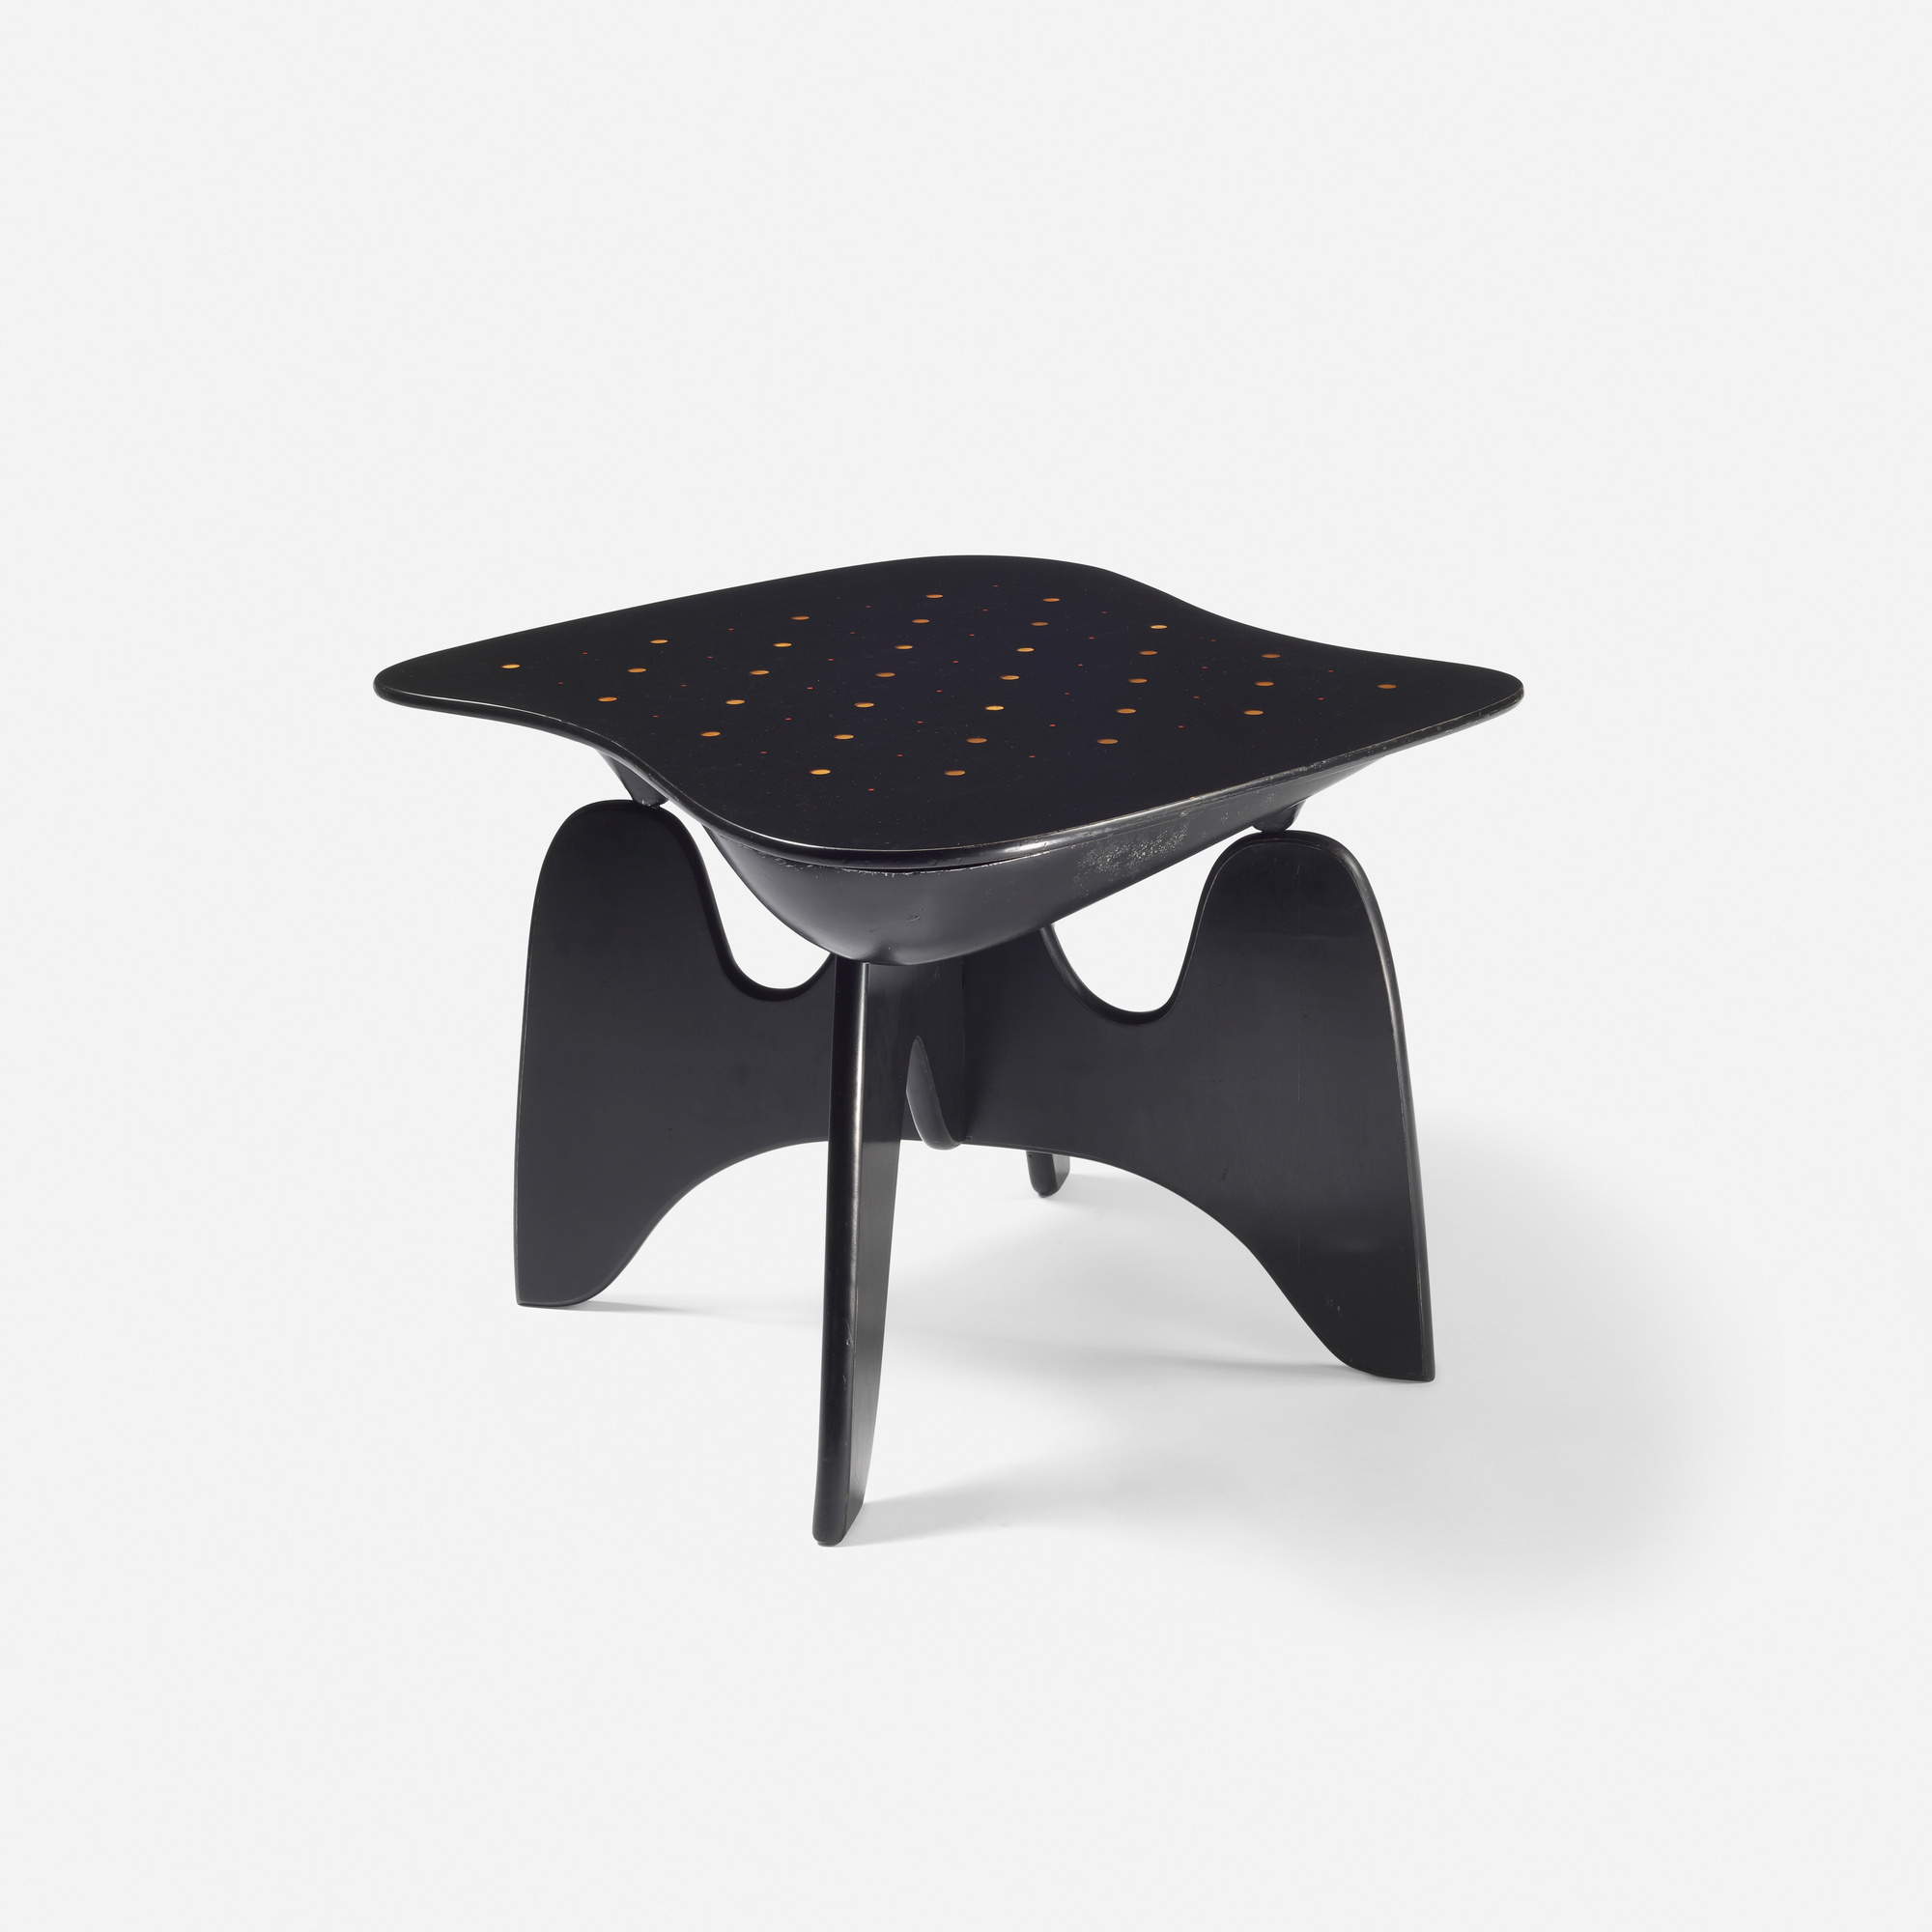 16: Isamu Noguchi / Rare and Important Chess table, model IN-61 (2 of 6)